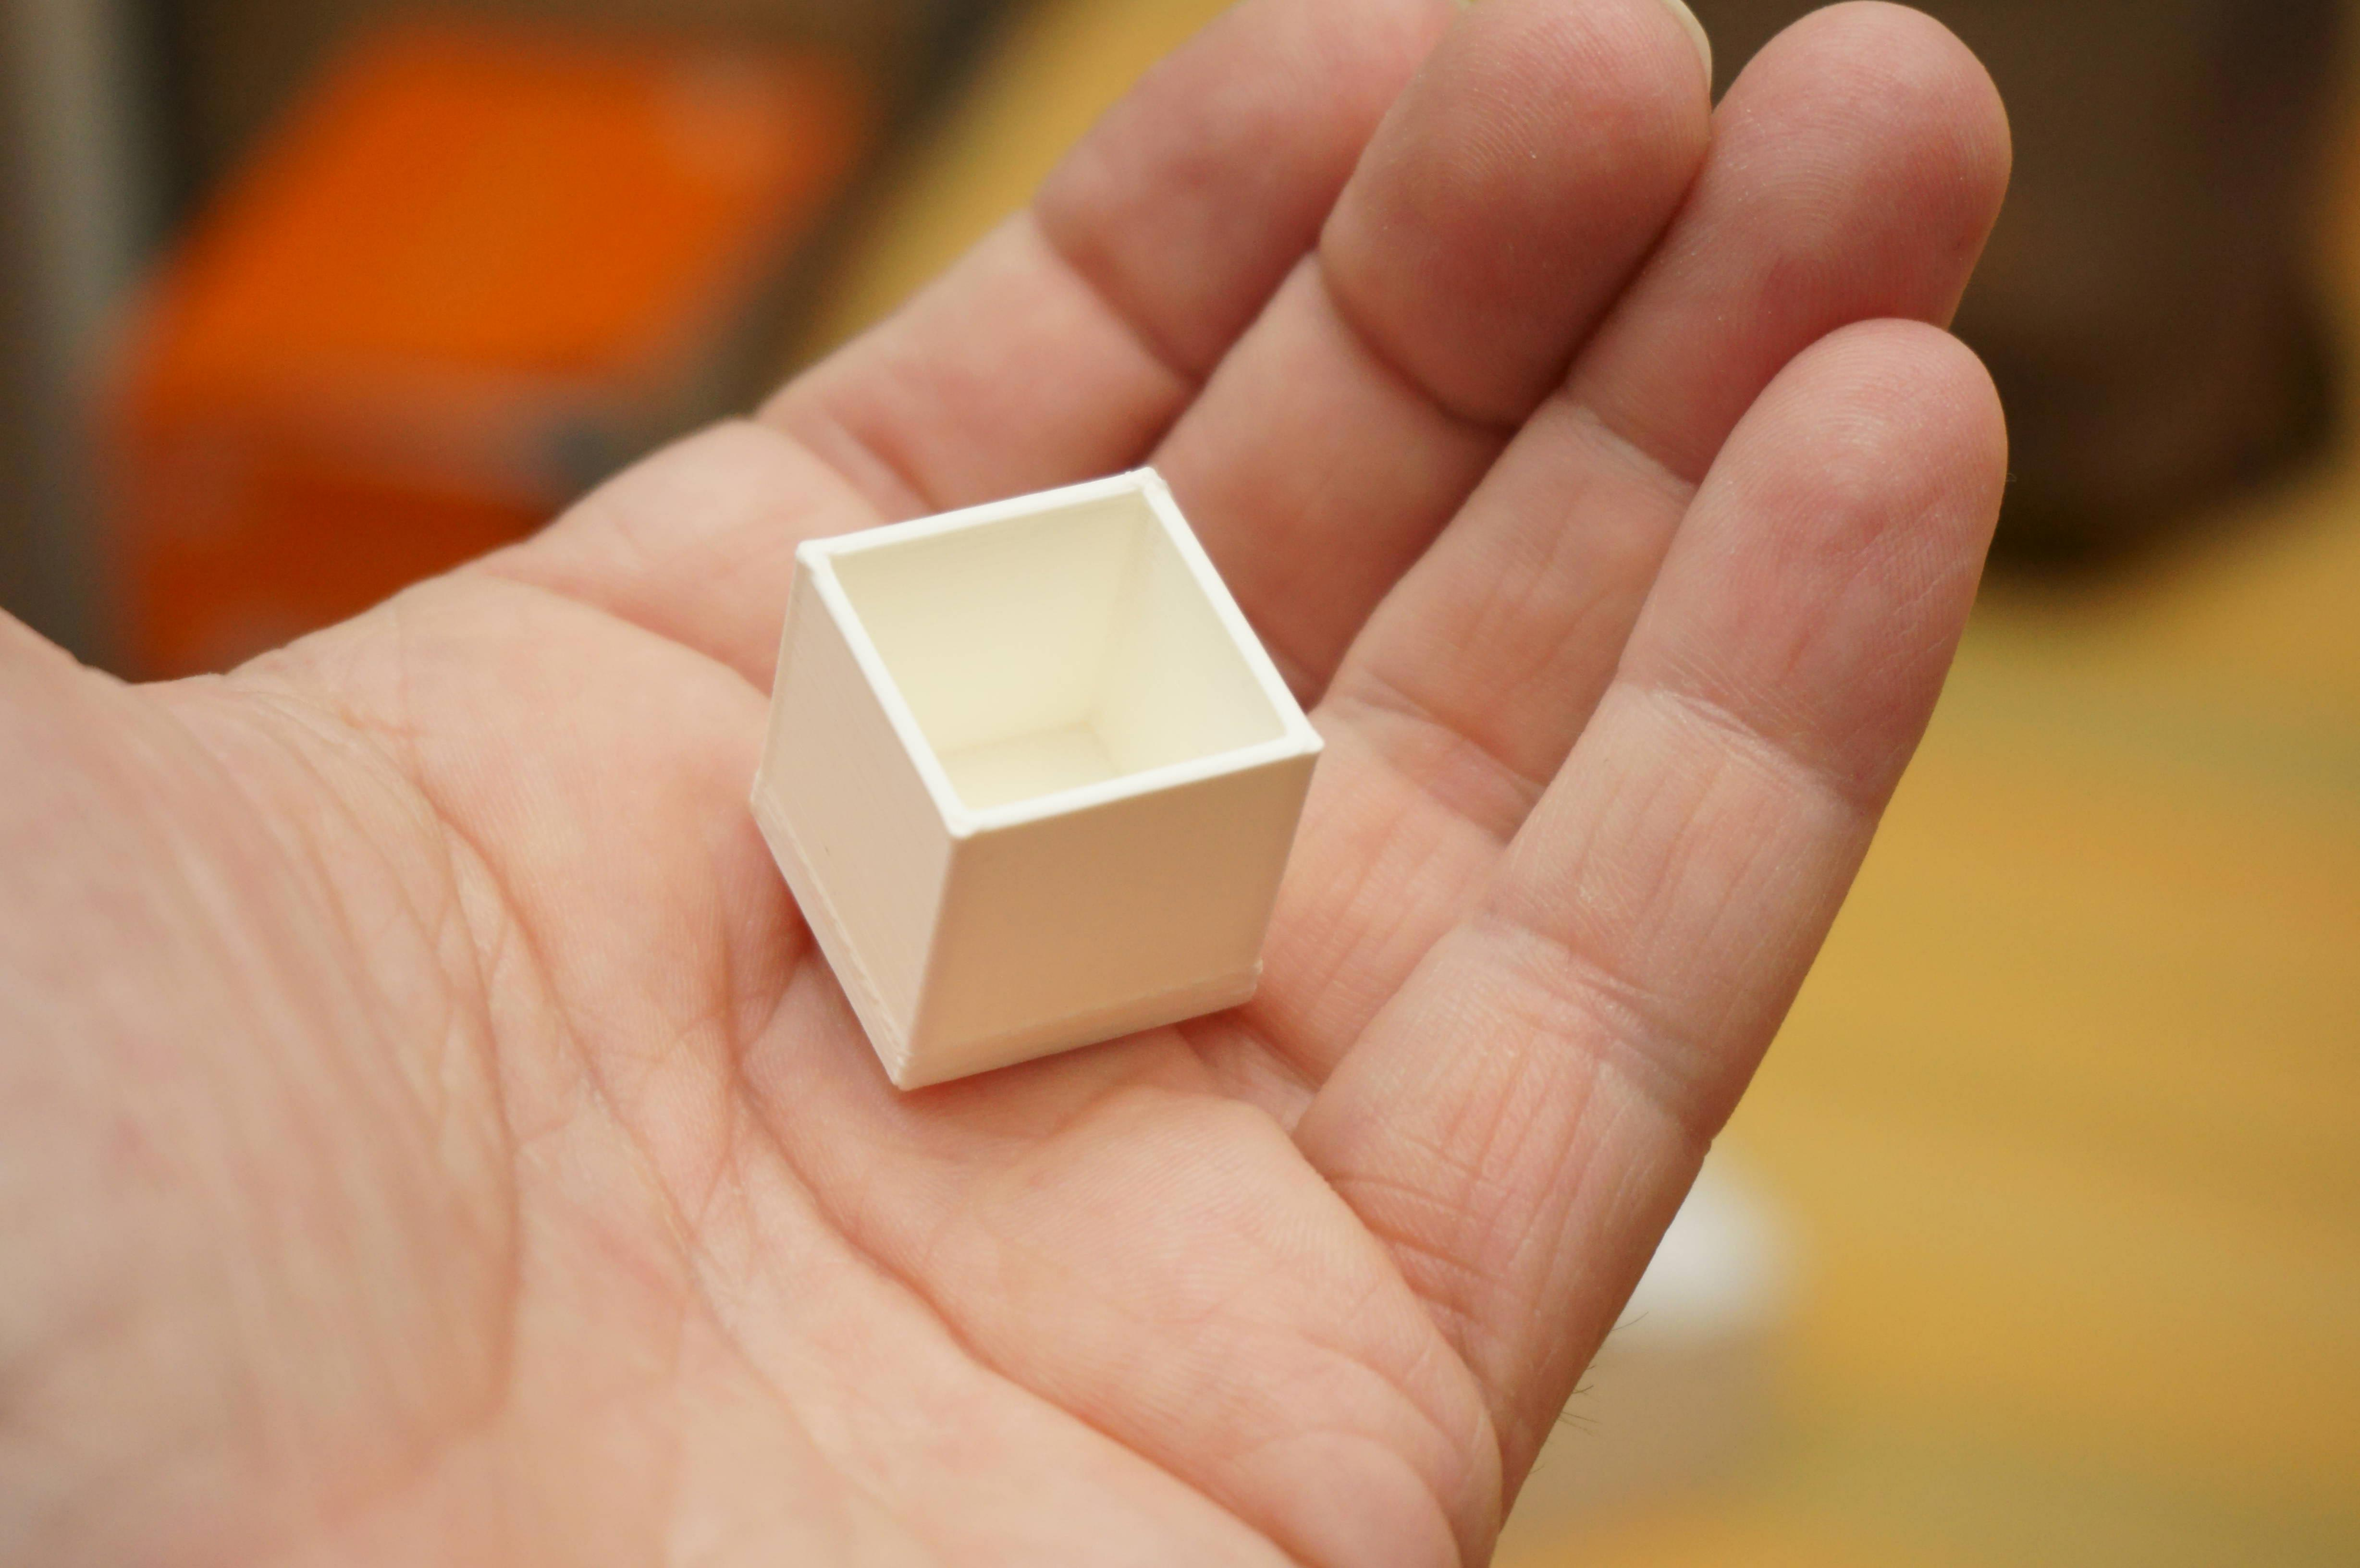 cubetest2.jpg